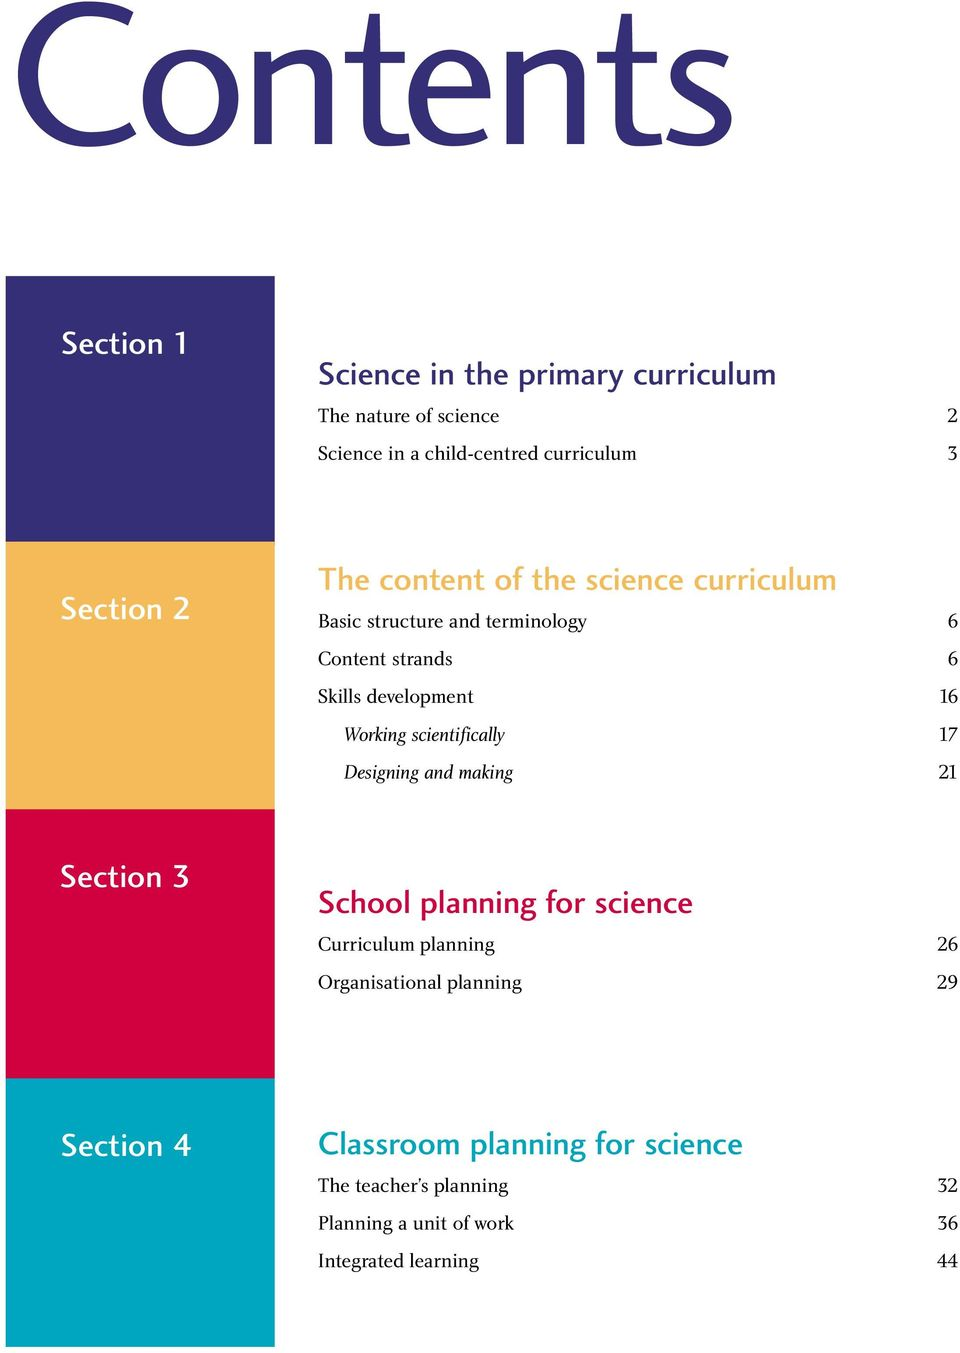 Working scientifically 17 Designing and making 21 Section 3 School planning for science Curriculum planning 26